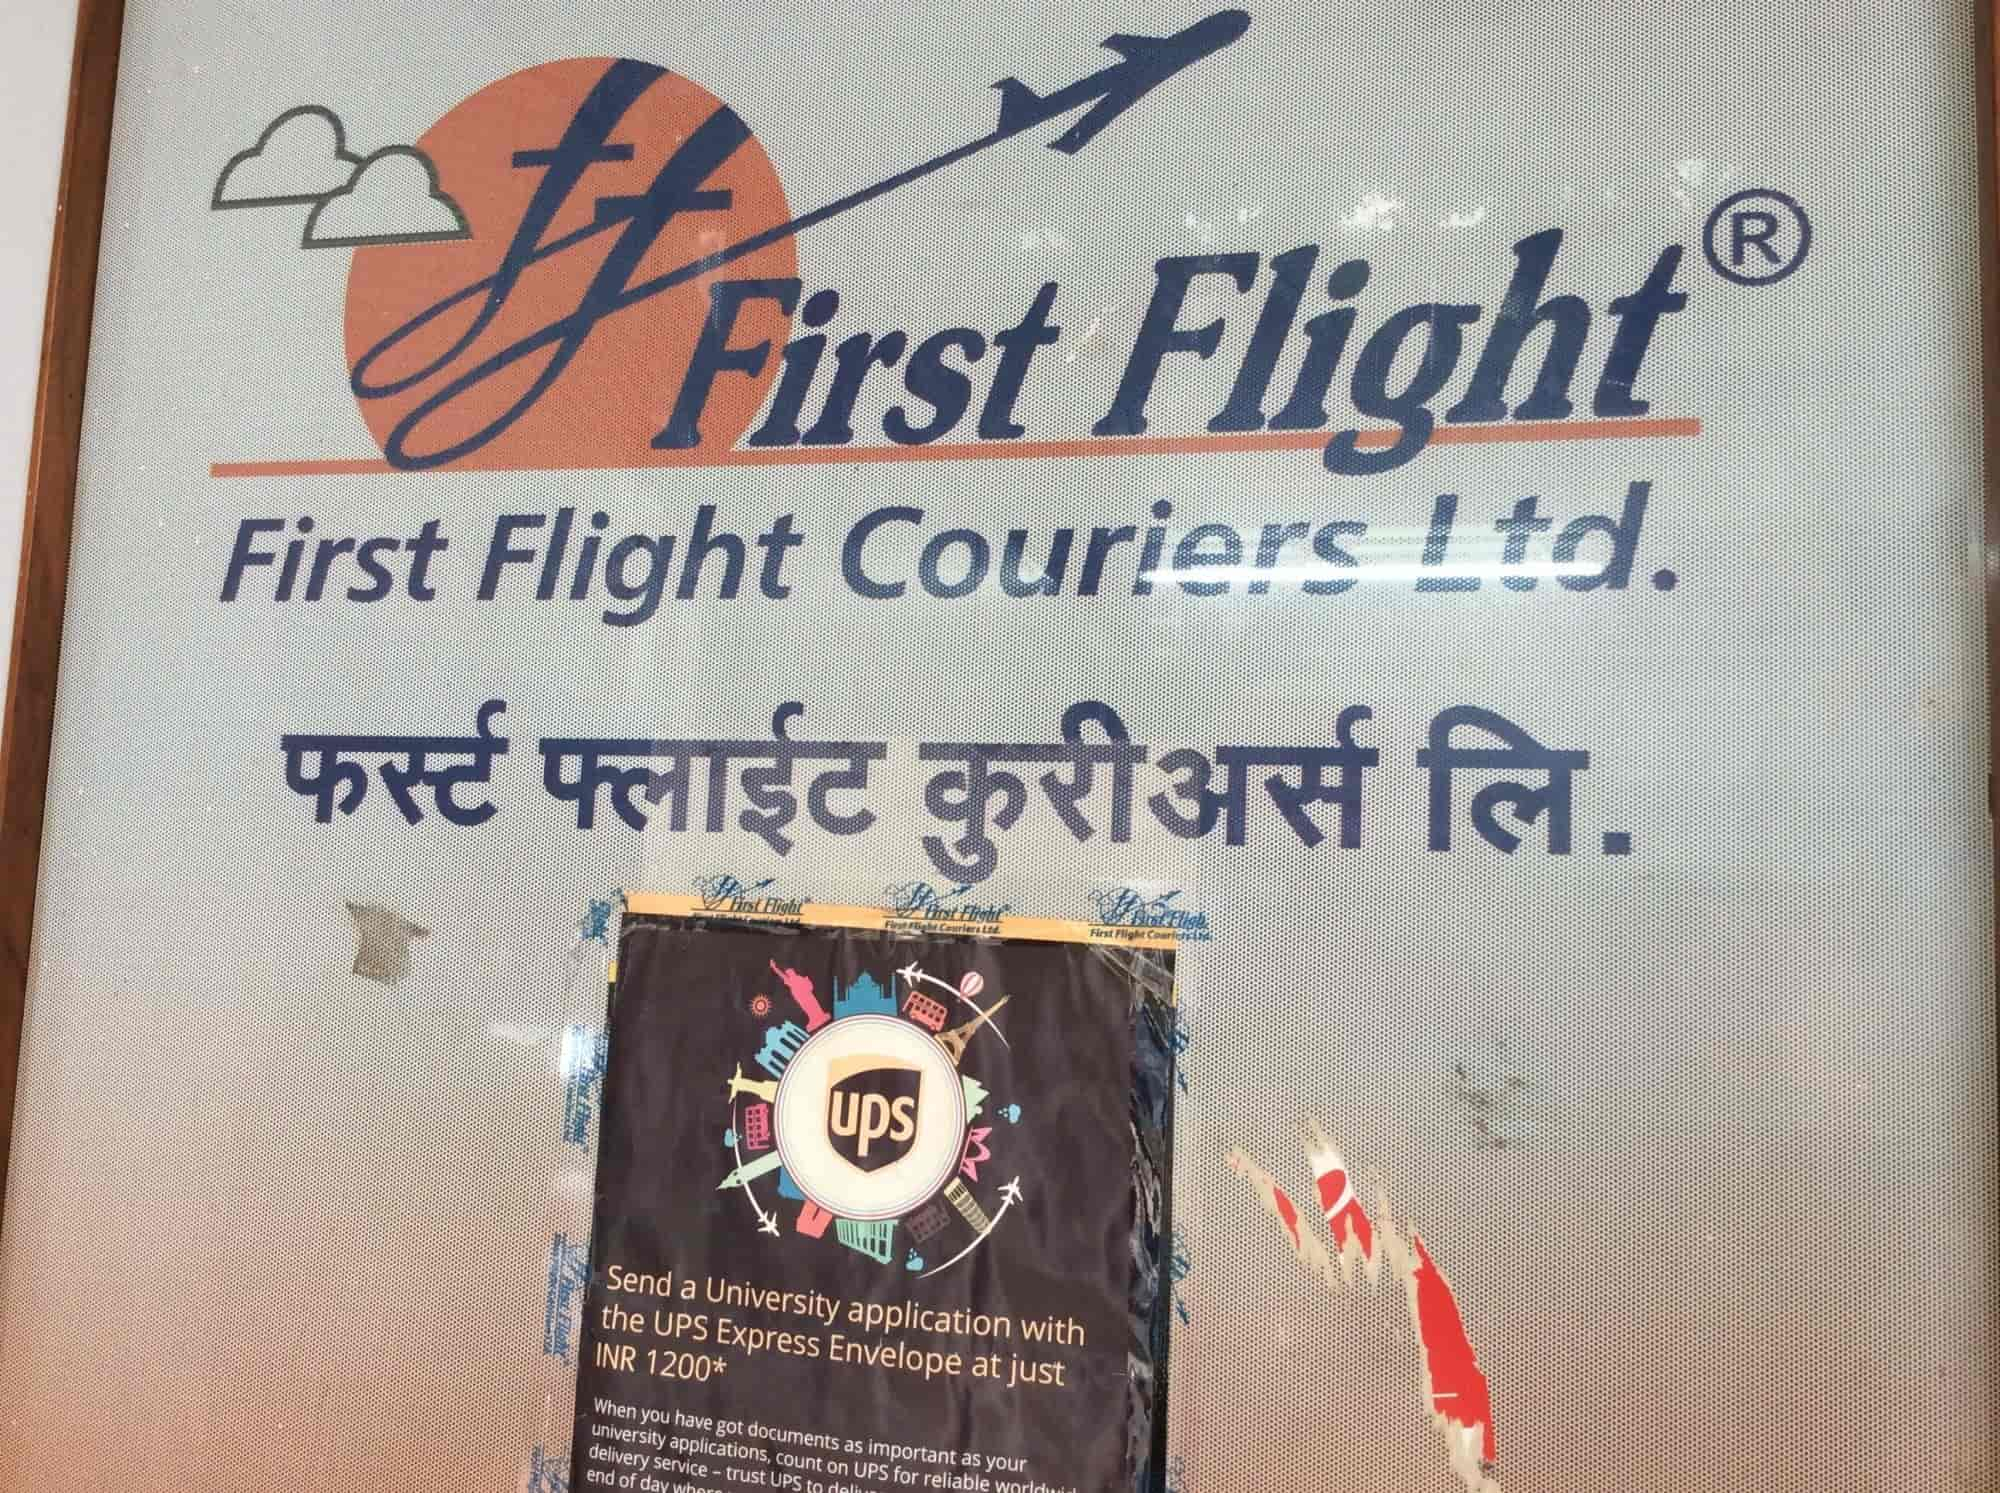 First Flight Couriers Ltd, Andheri East - Courier Services